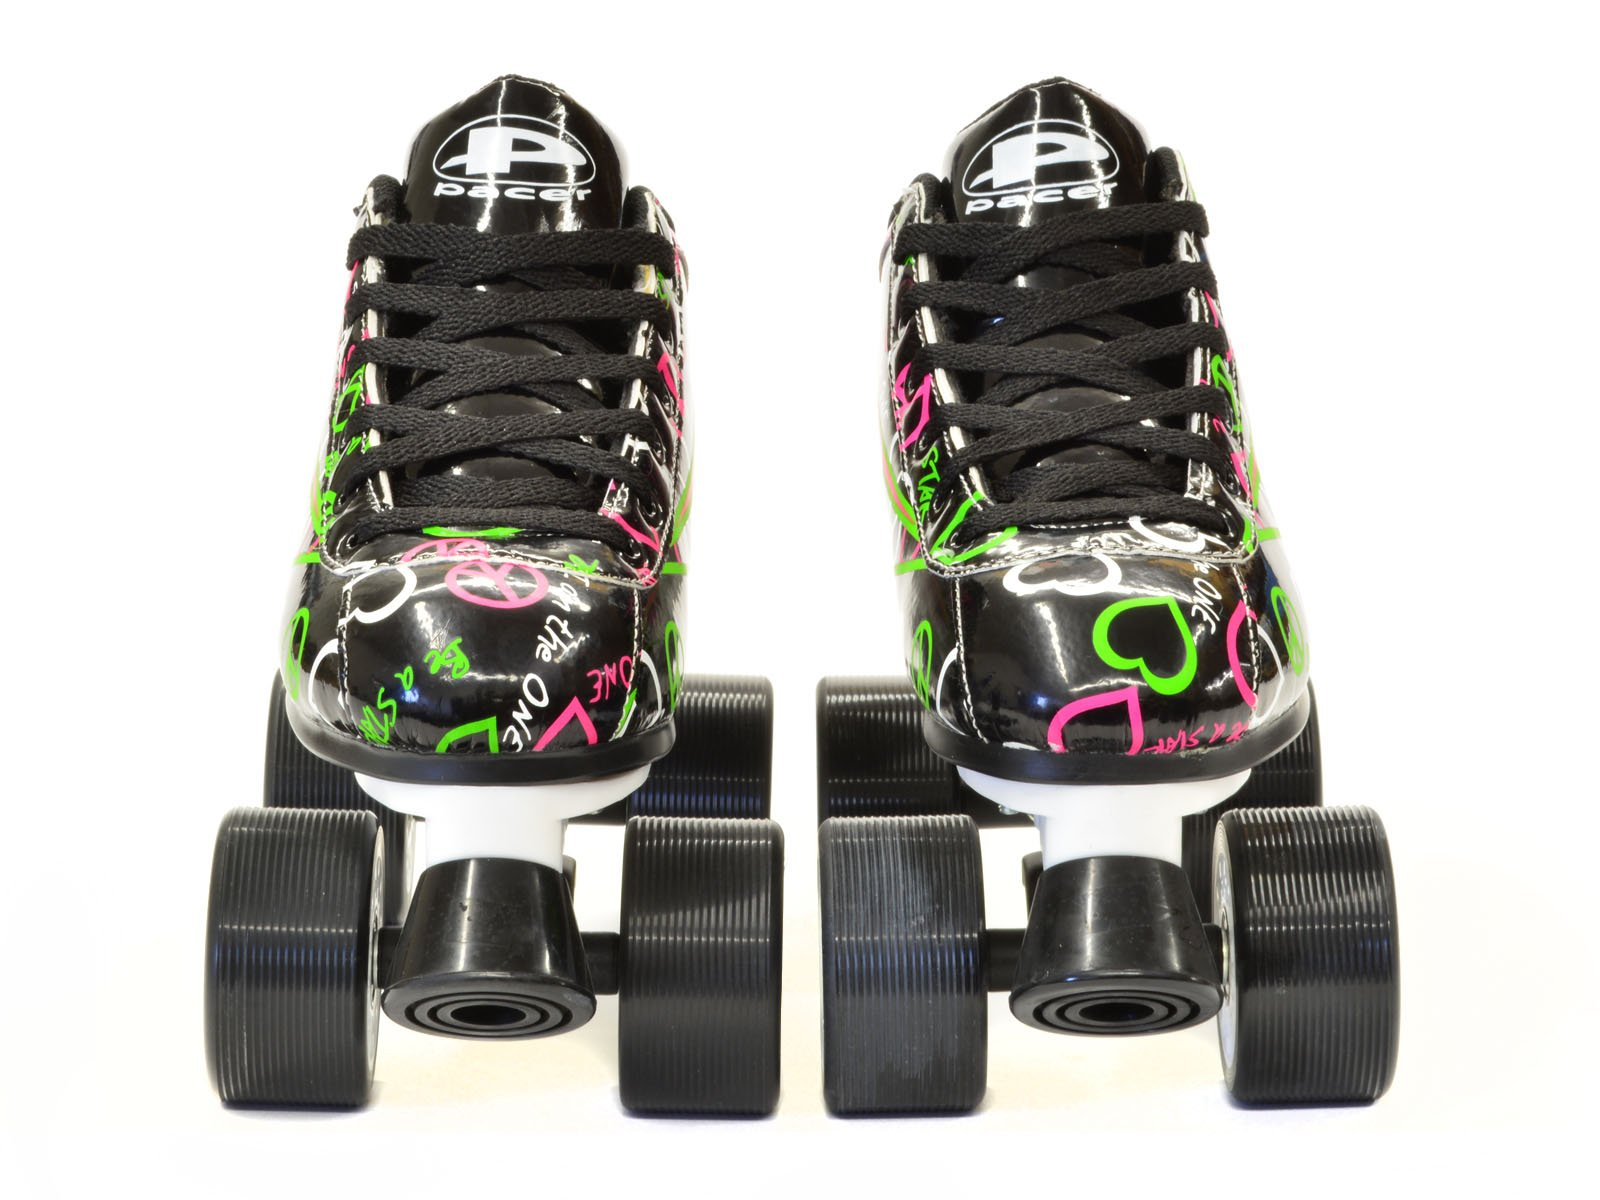 Pacer Black & Neon Heart Throb Quad Roller Speed Skates with Bonus 3 Pr. Laces (Ladies 7 / Mens 6)